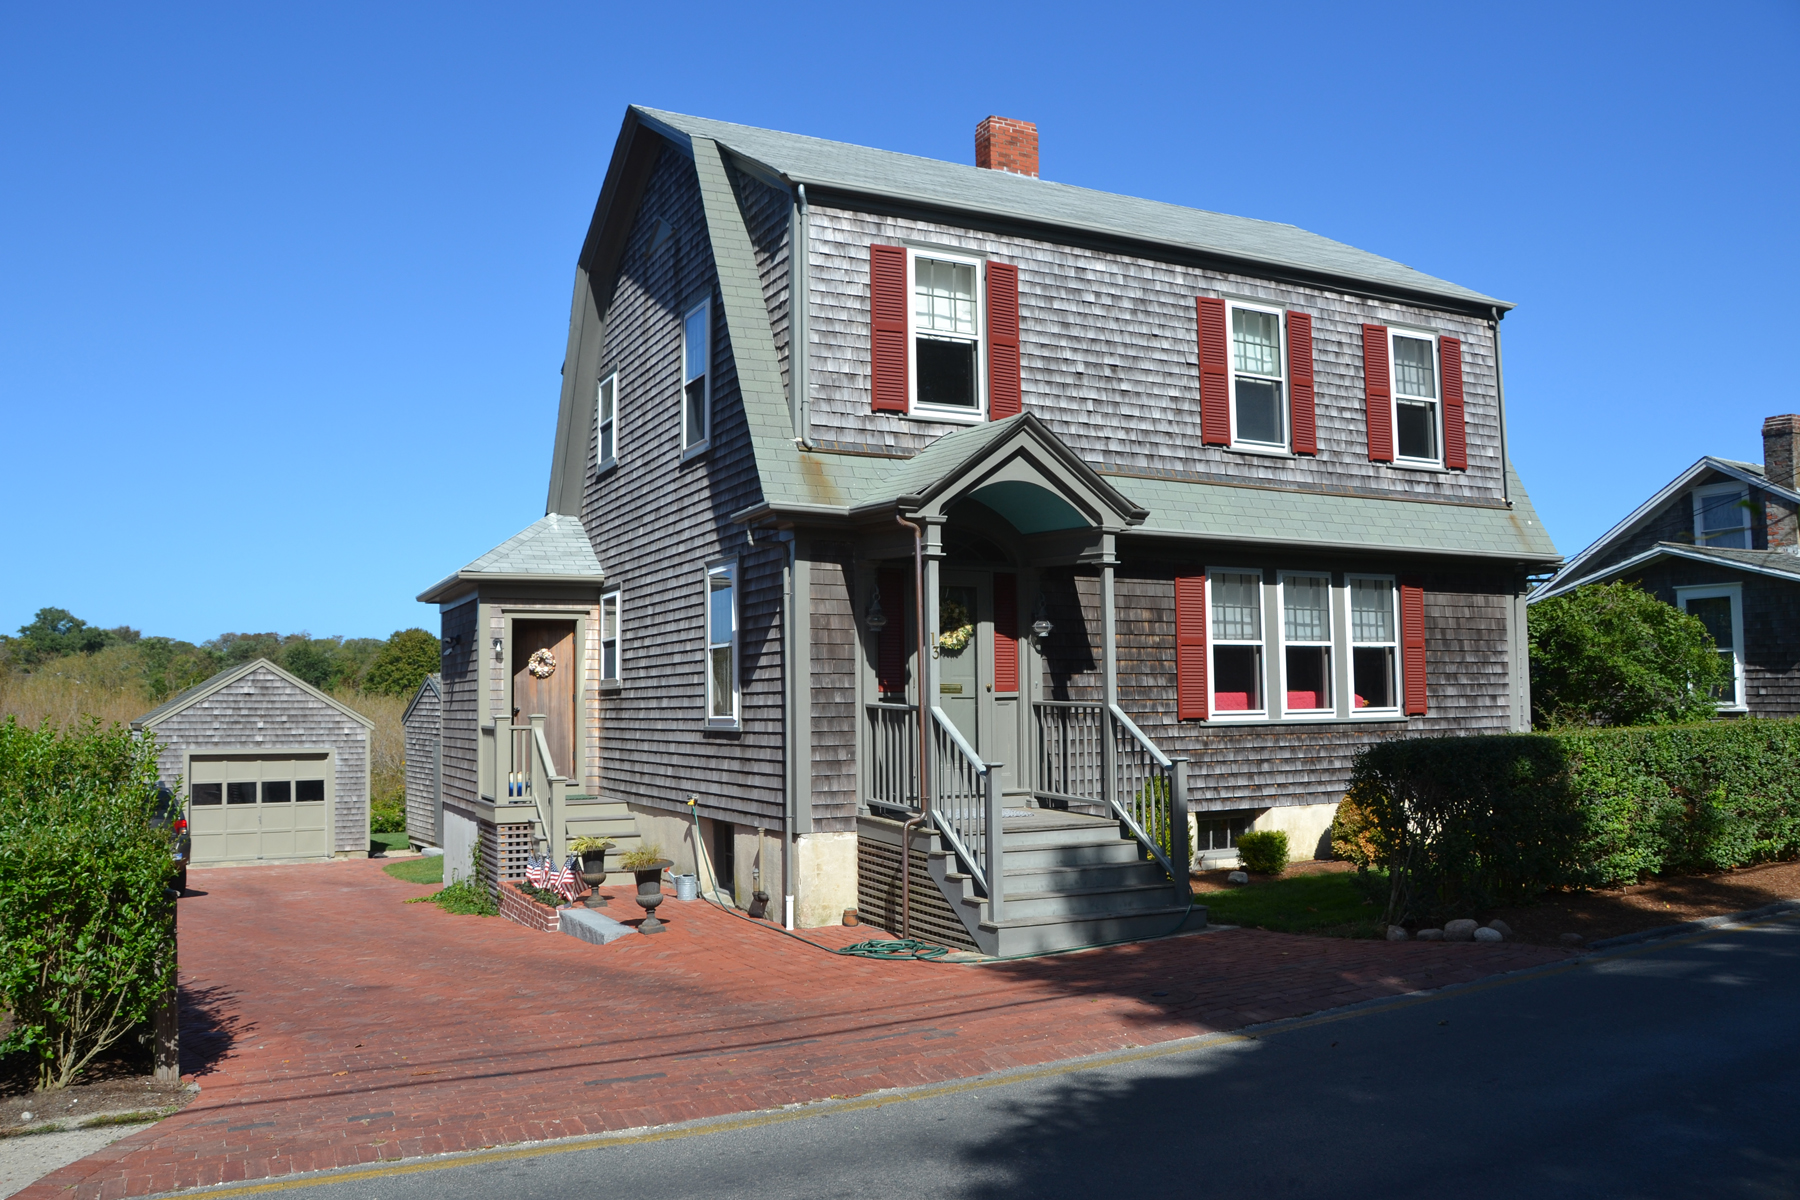 Single Family Home for Sale at Ideally Located in Old Historic District 13 North Liberty Street Nantucket, Massachusetts, 02554 United States